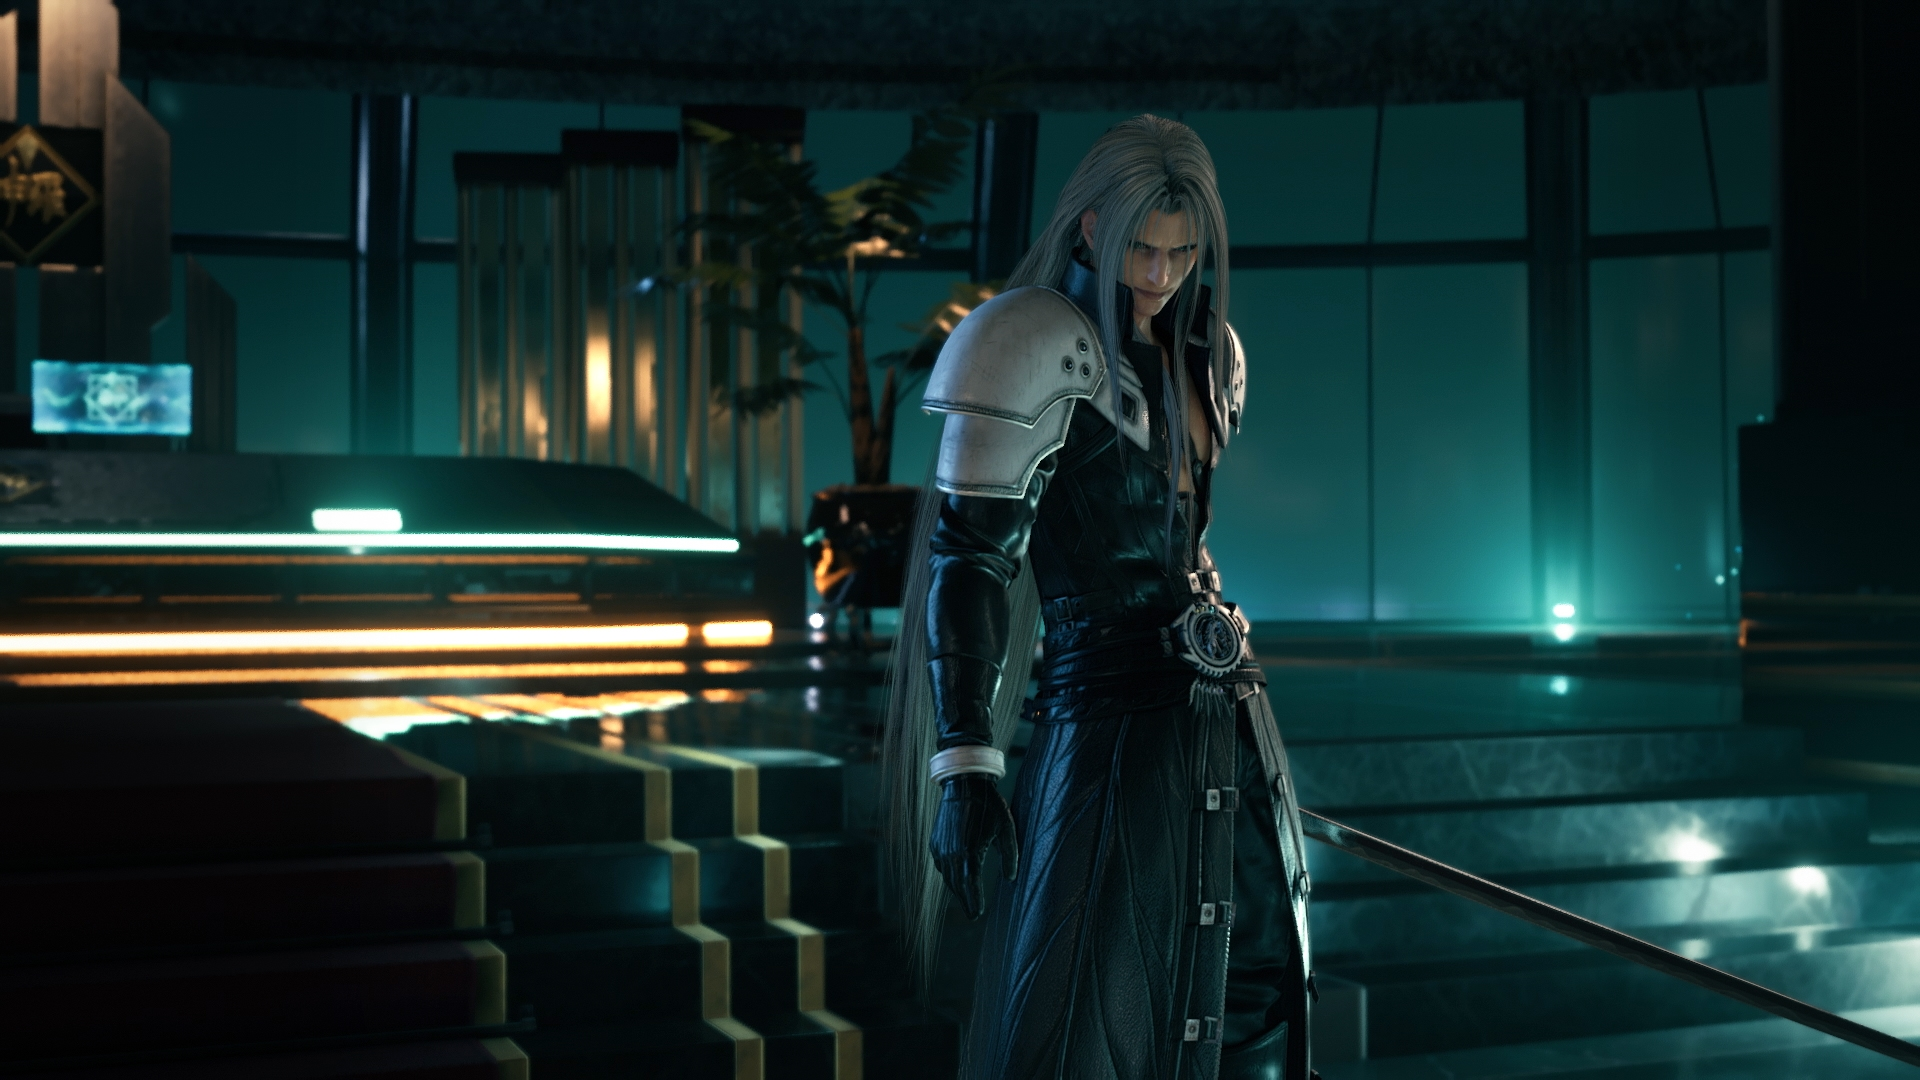 Final Fantasy VII Remake Gets New Screenshots, Character Renders, And More